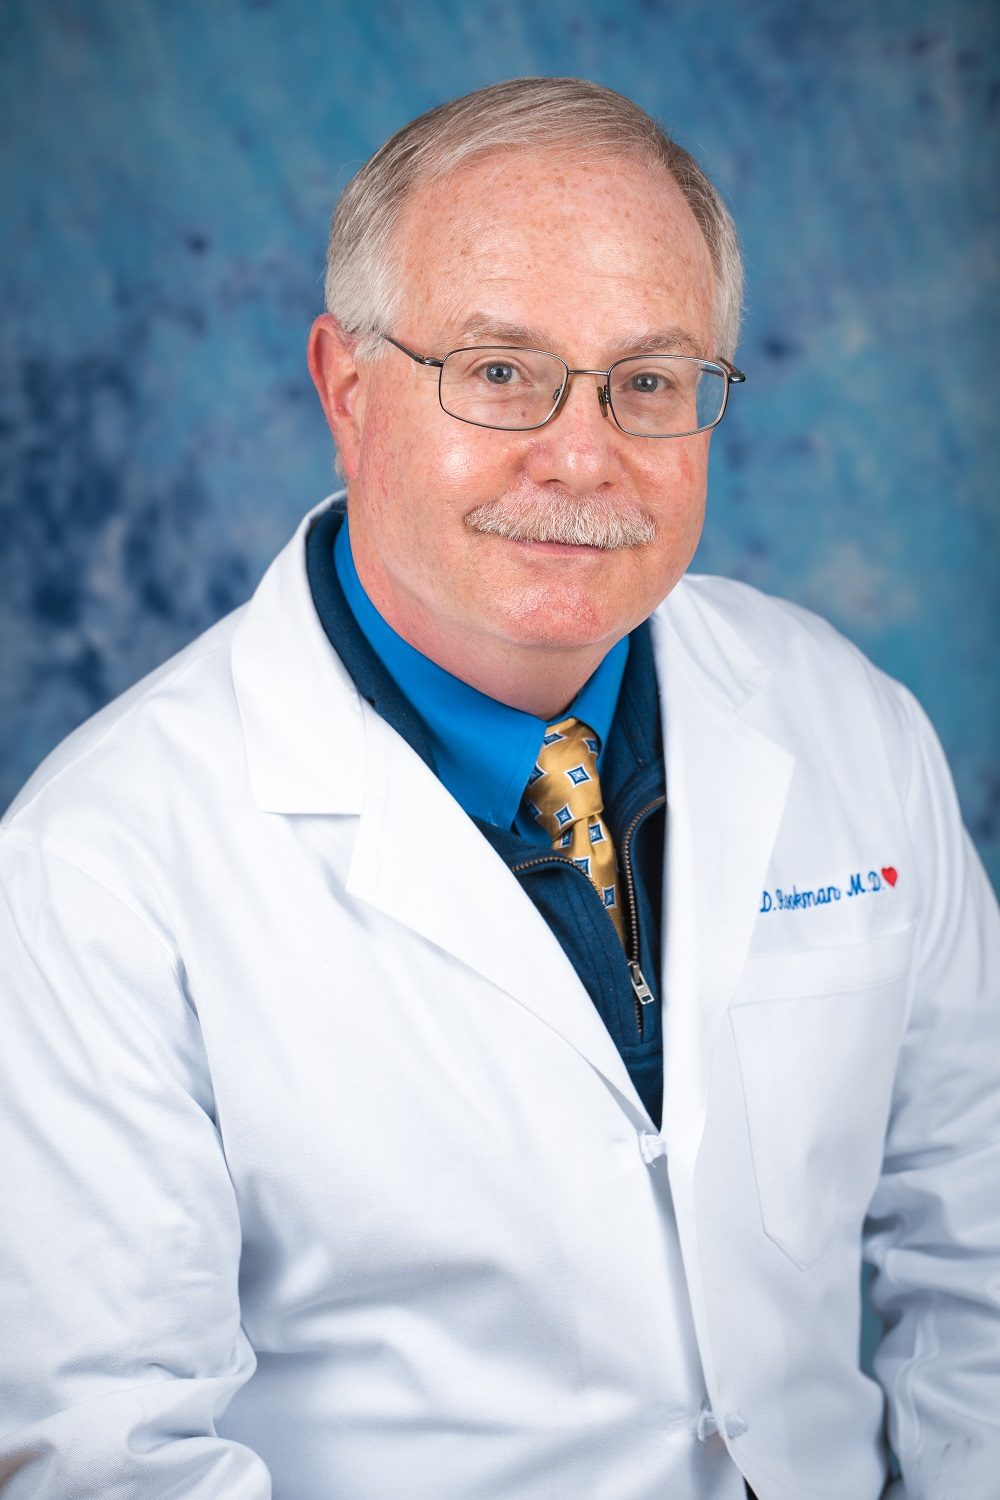 Lawrence Hookman, MD, FACC of the Heart Care Team at Hookman Cardiology